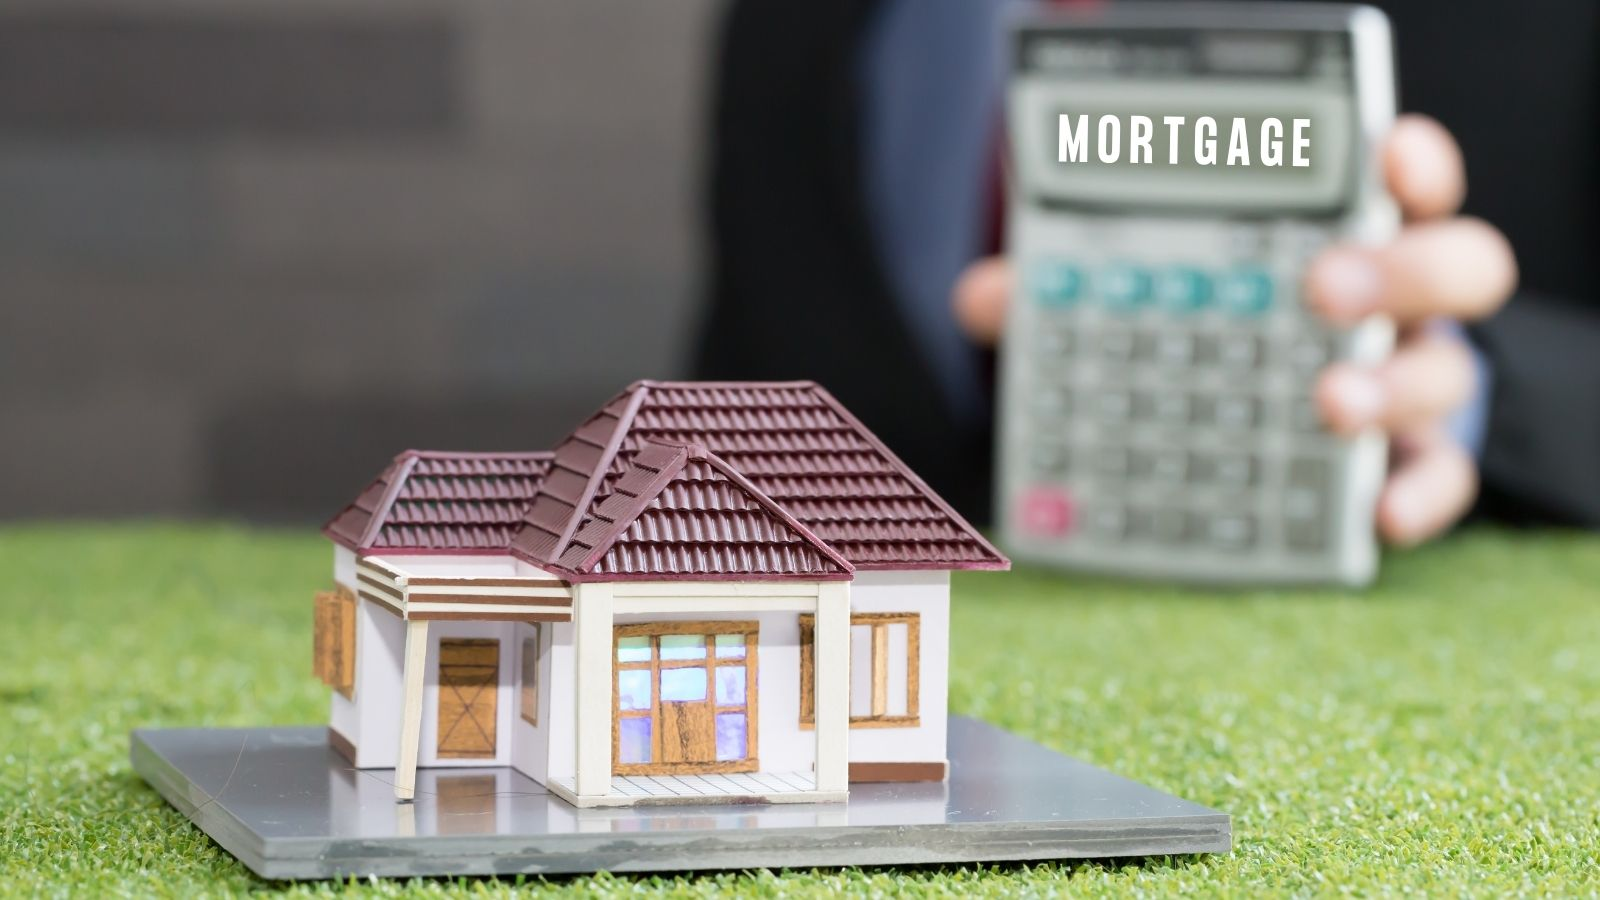 What Happens to The Mortgage When A Home Is Sold?